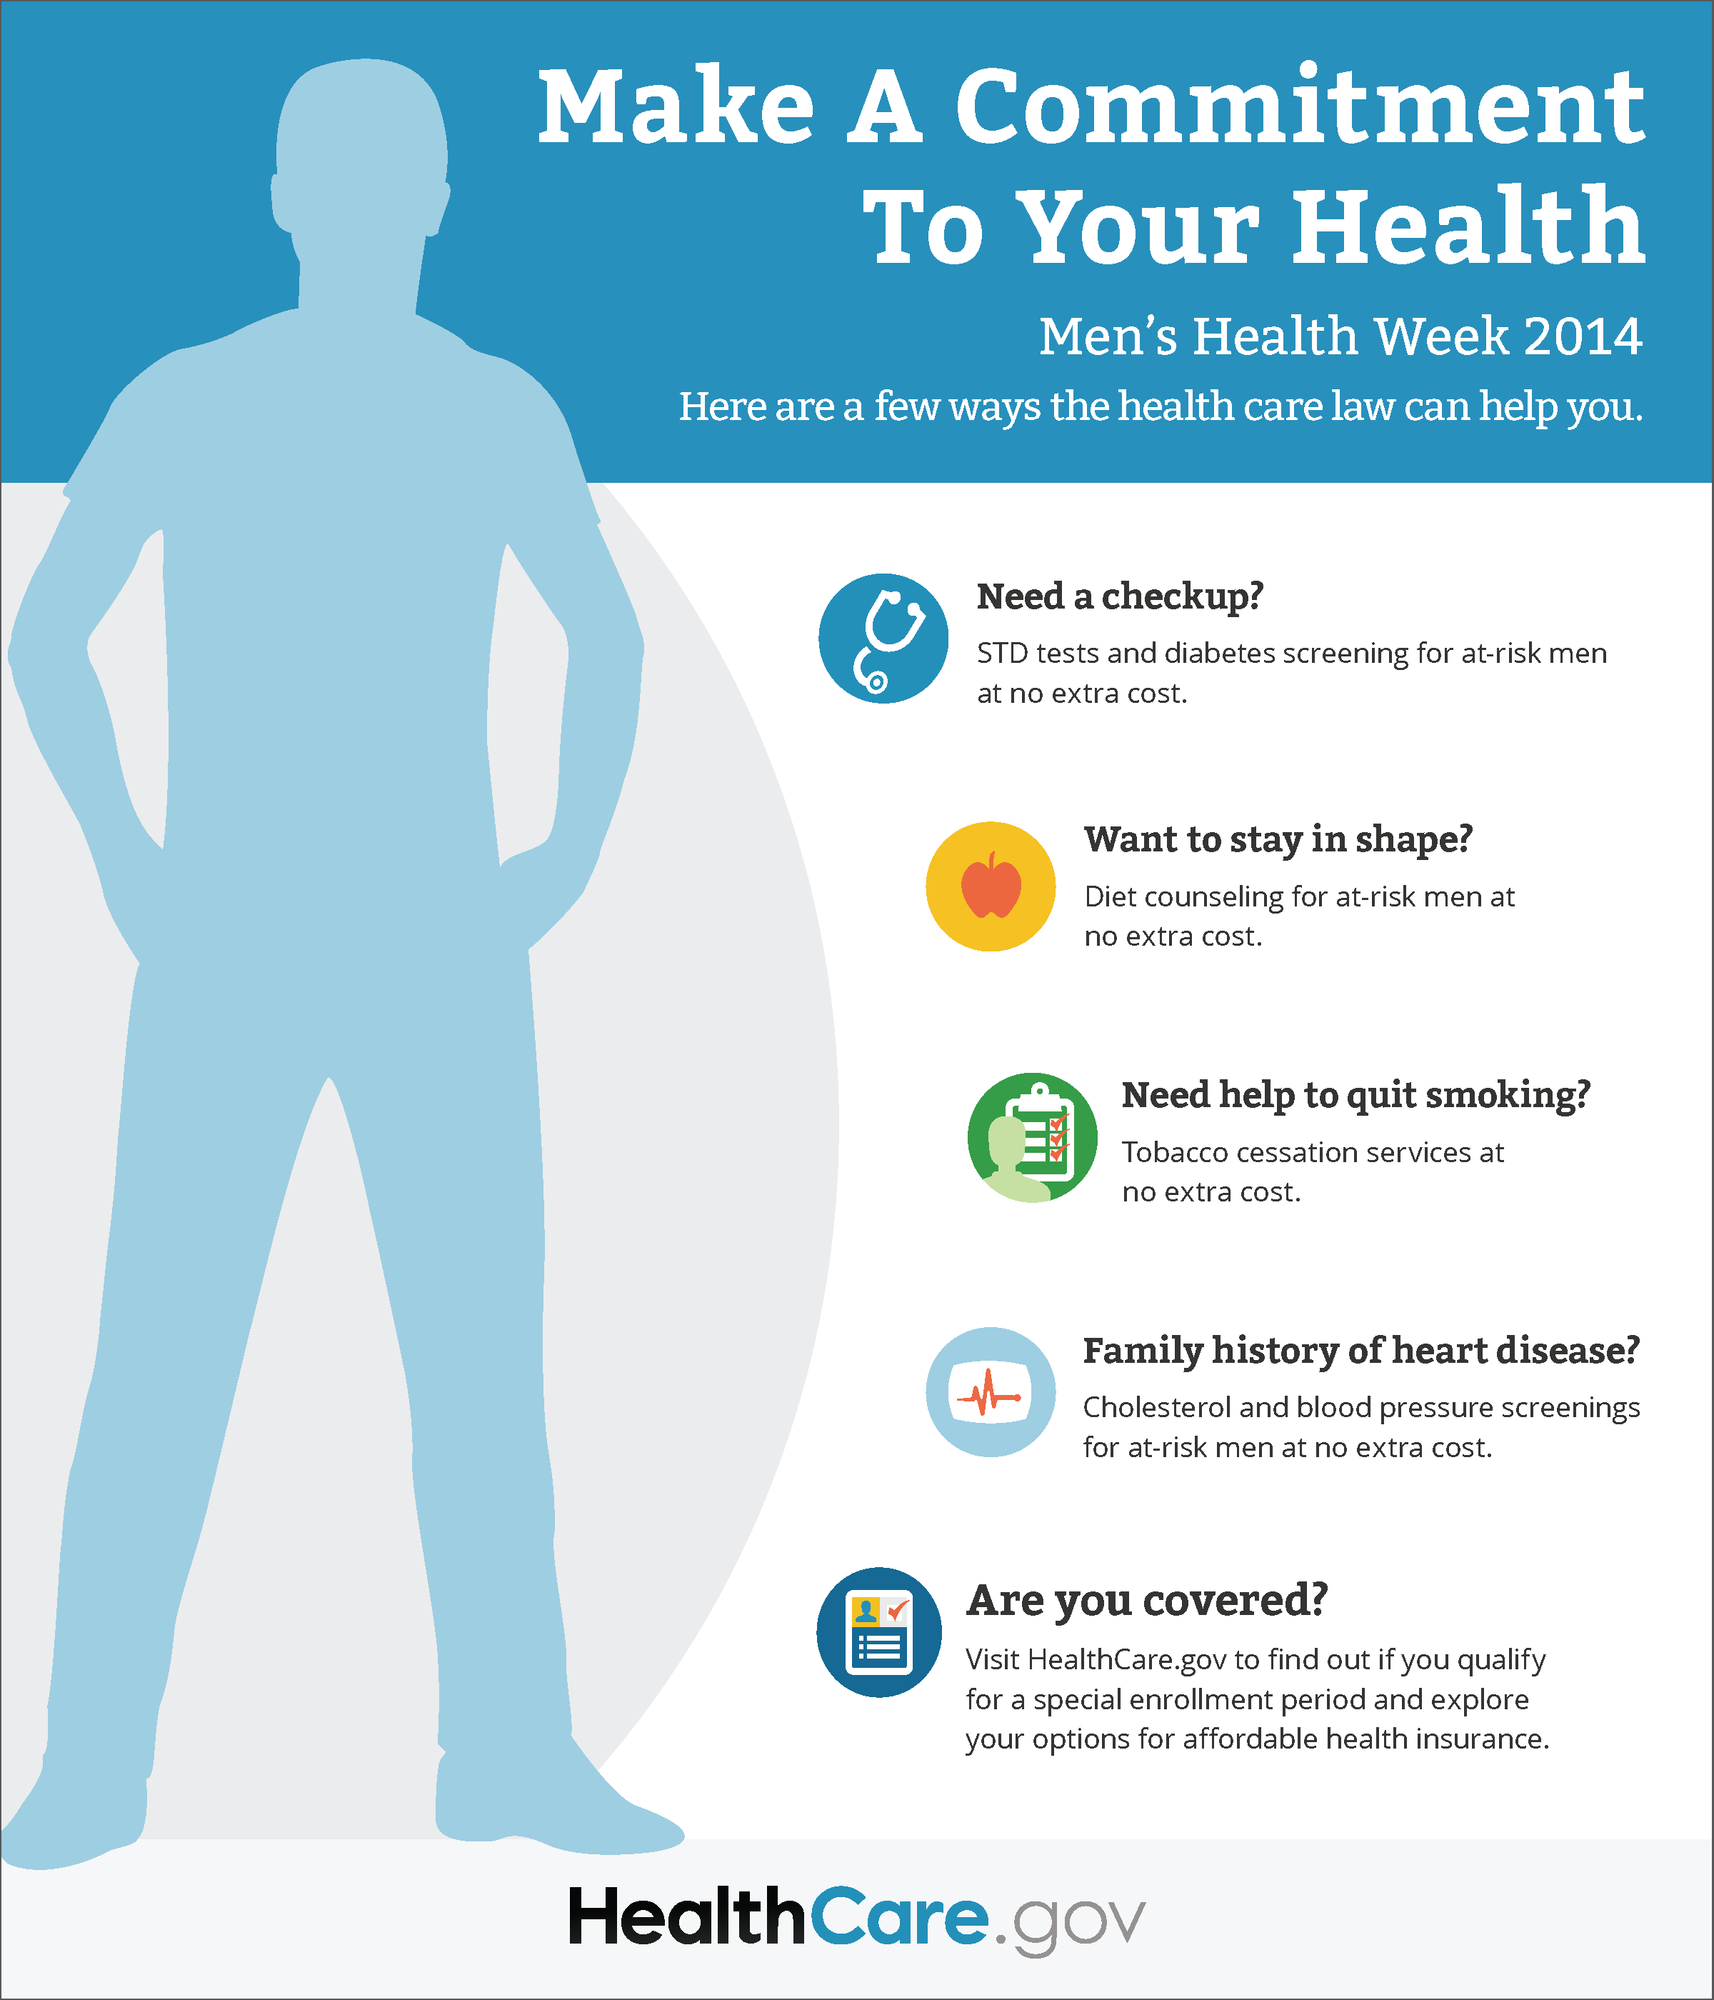 Make A Commitment To Your Health Infographic